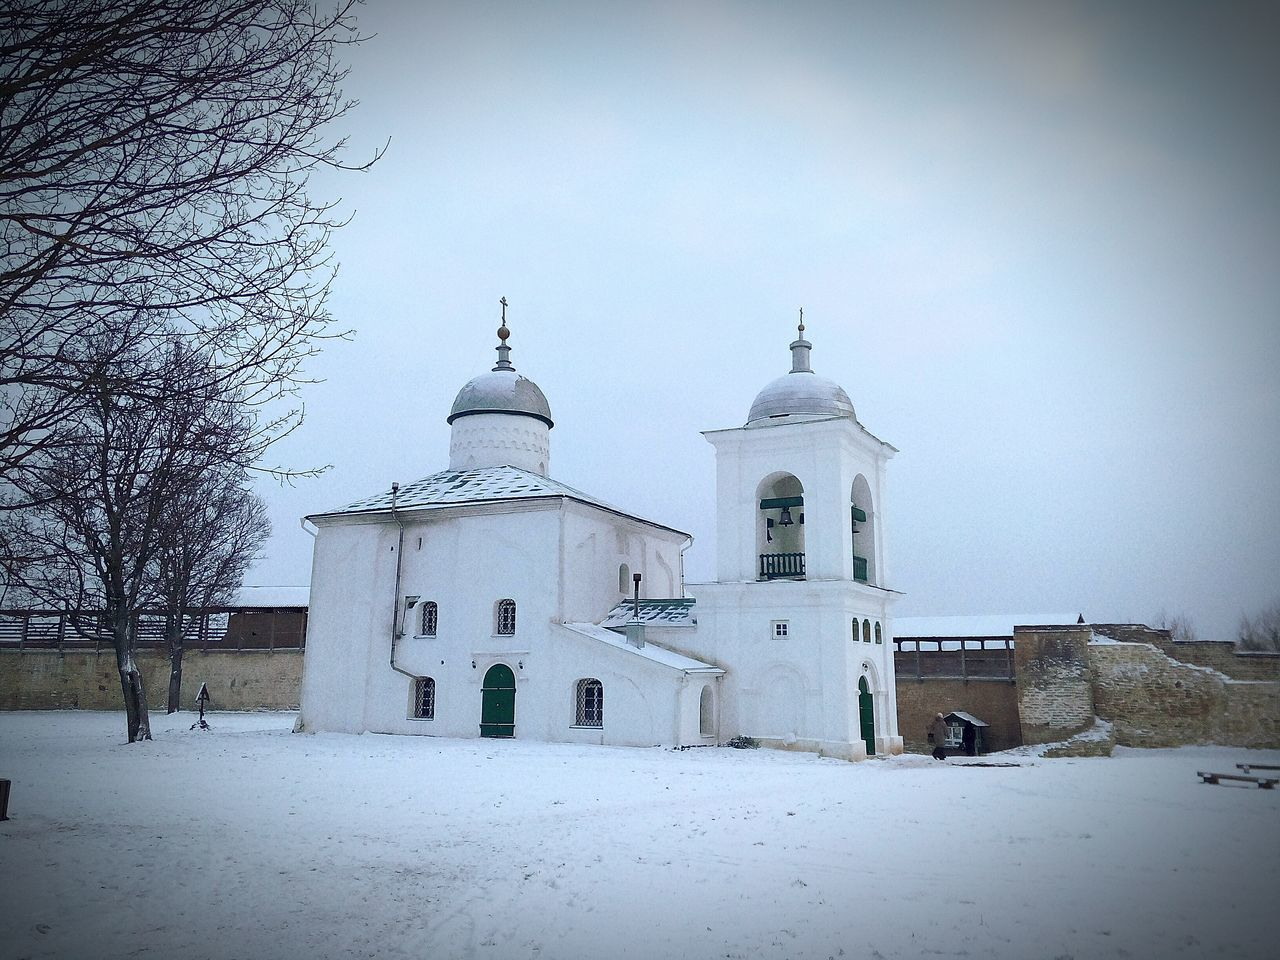 Low Angle View Of Izborsk Fortress By Snow Covered Field Against Sky